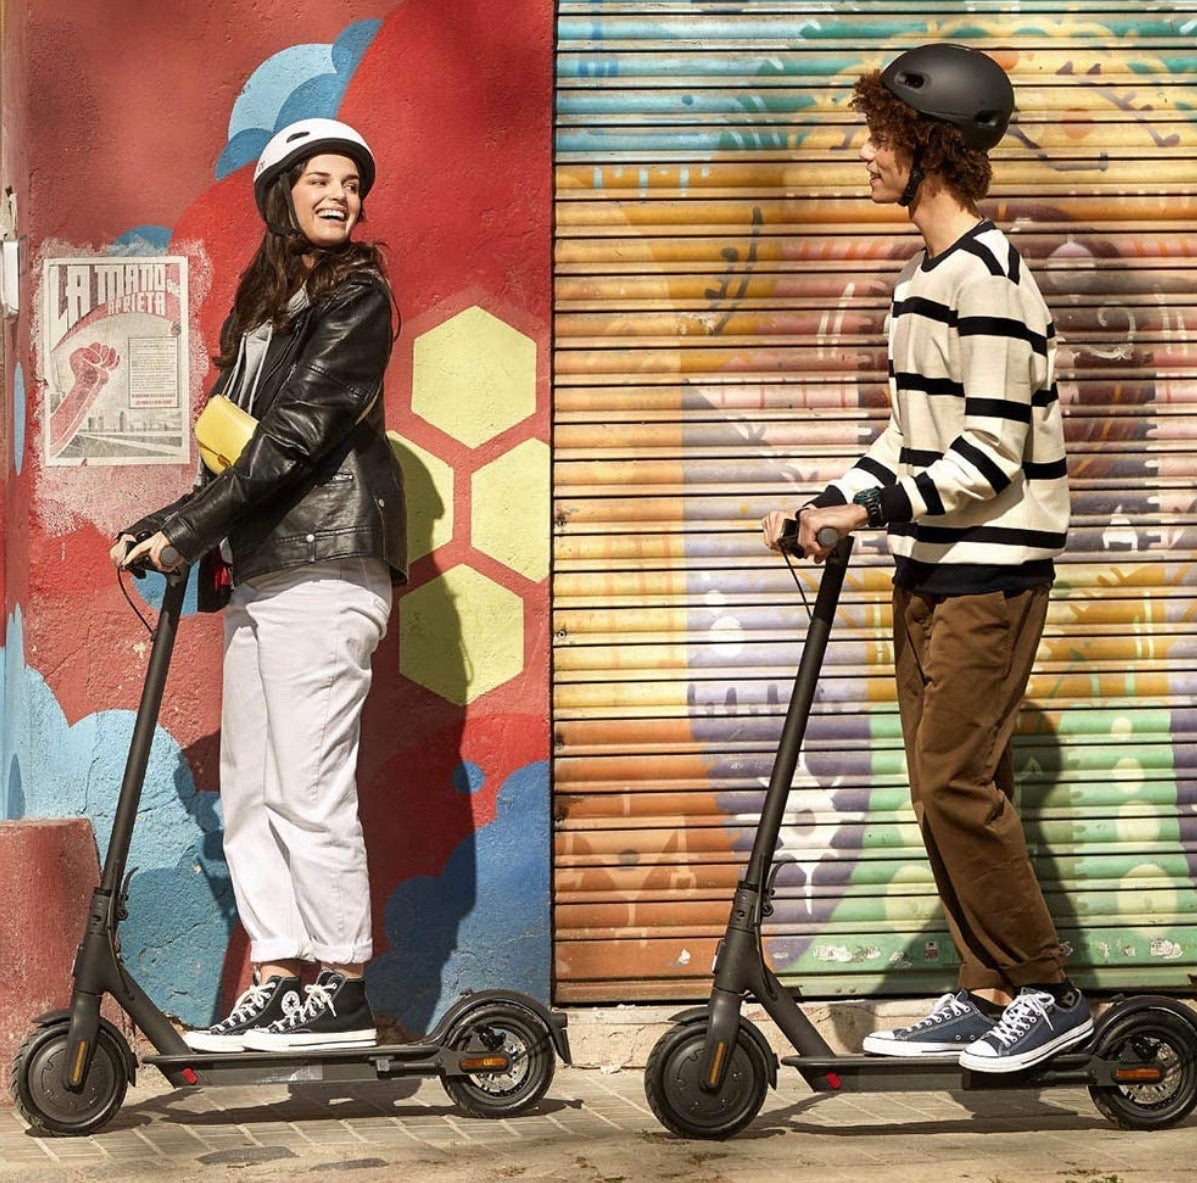 Xiaomi 1S Electric Scooter Urban Transport